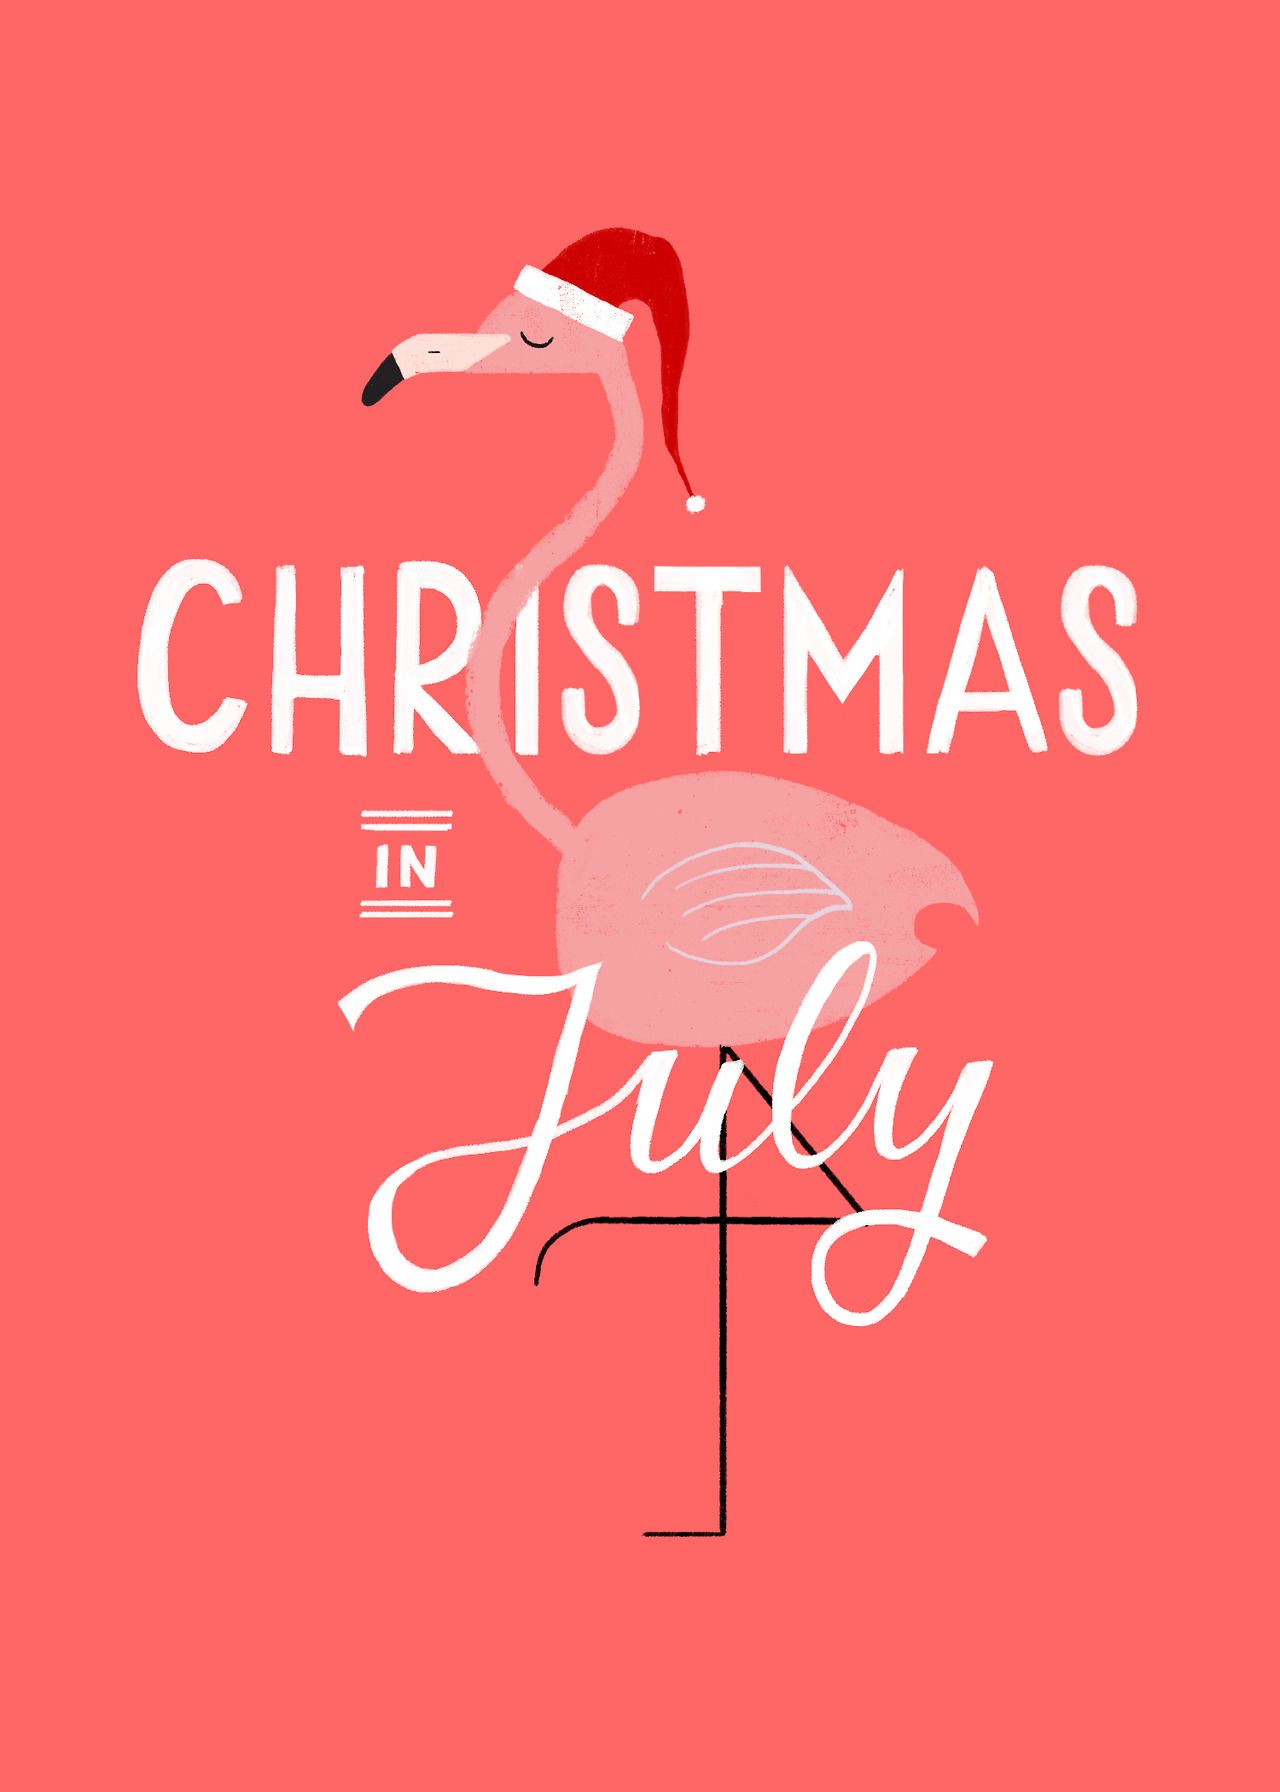 CHRISTMAS IN JULY   Our next ROAR Tribe Hangout is Saturday, July 21 in Laurel MD. Food, games, gift exchange, and pool party.